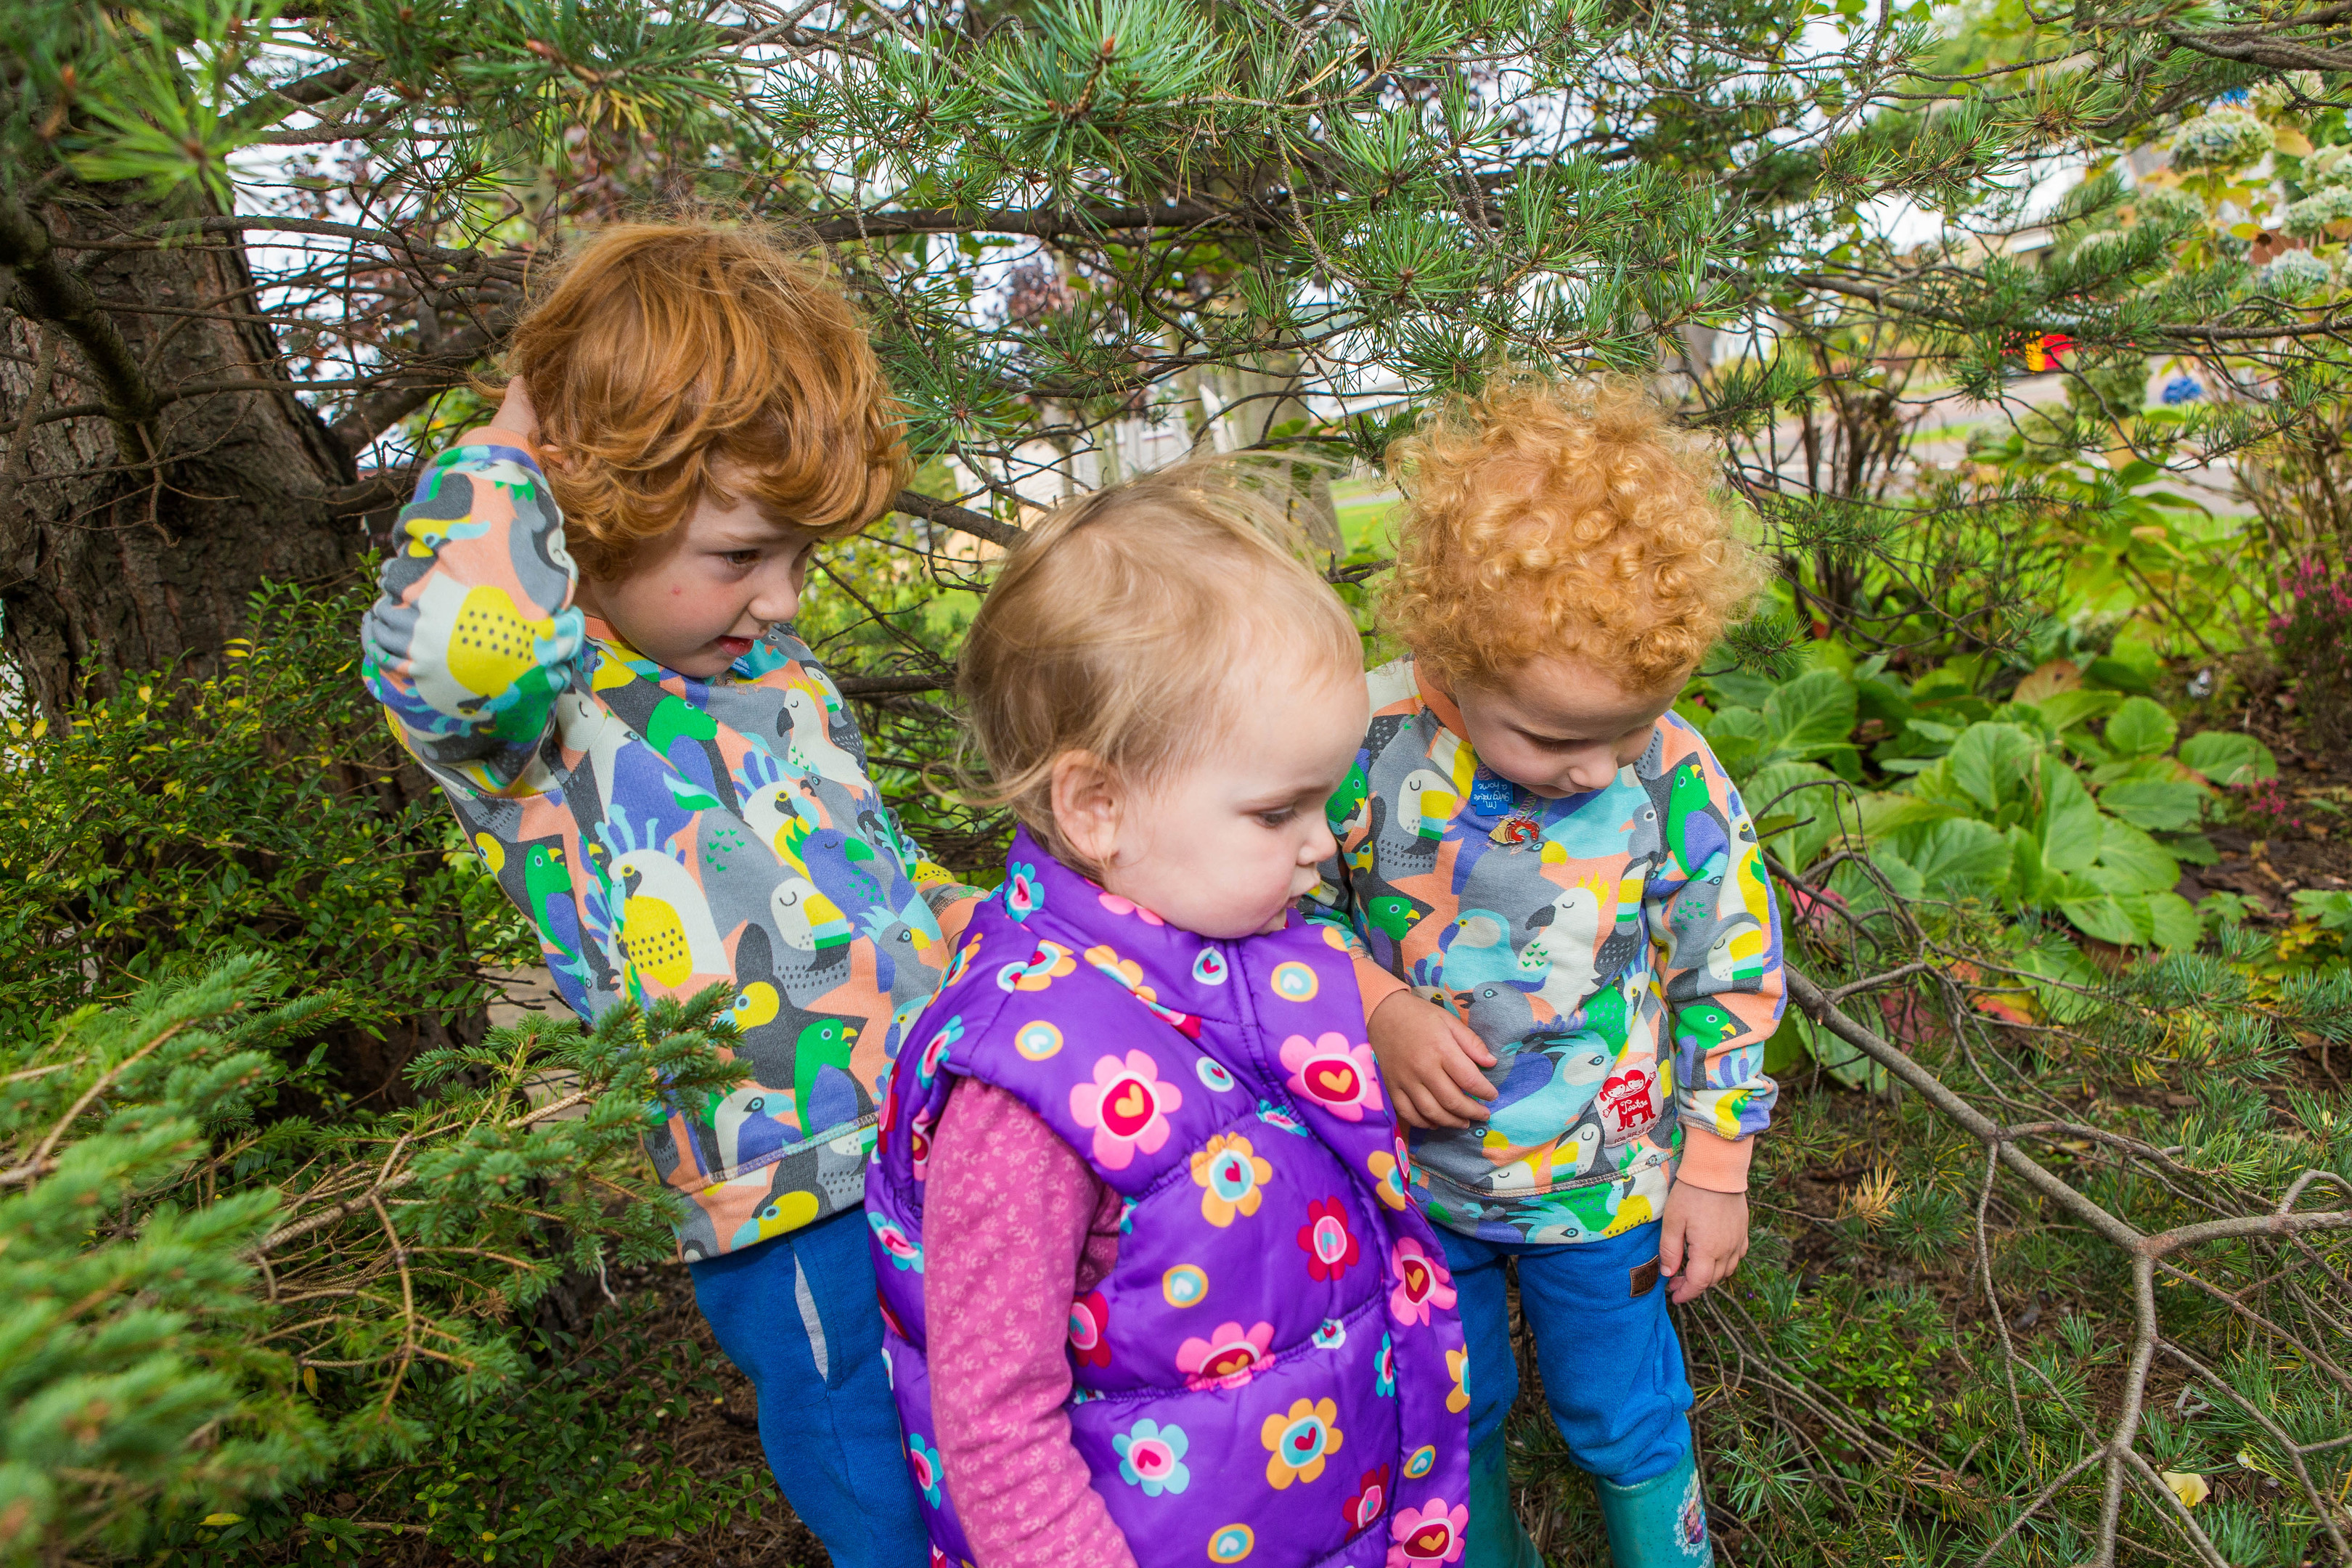 Jamie Allan (5), Robbie Allan (3) and Sabiha Ricks (2) explore the trees